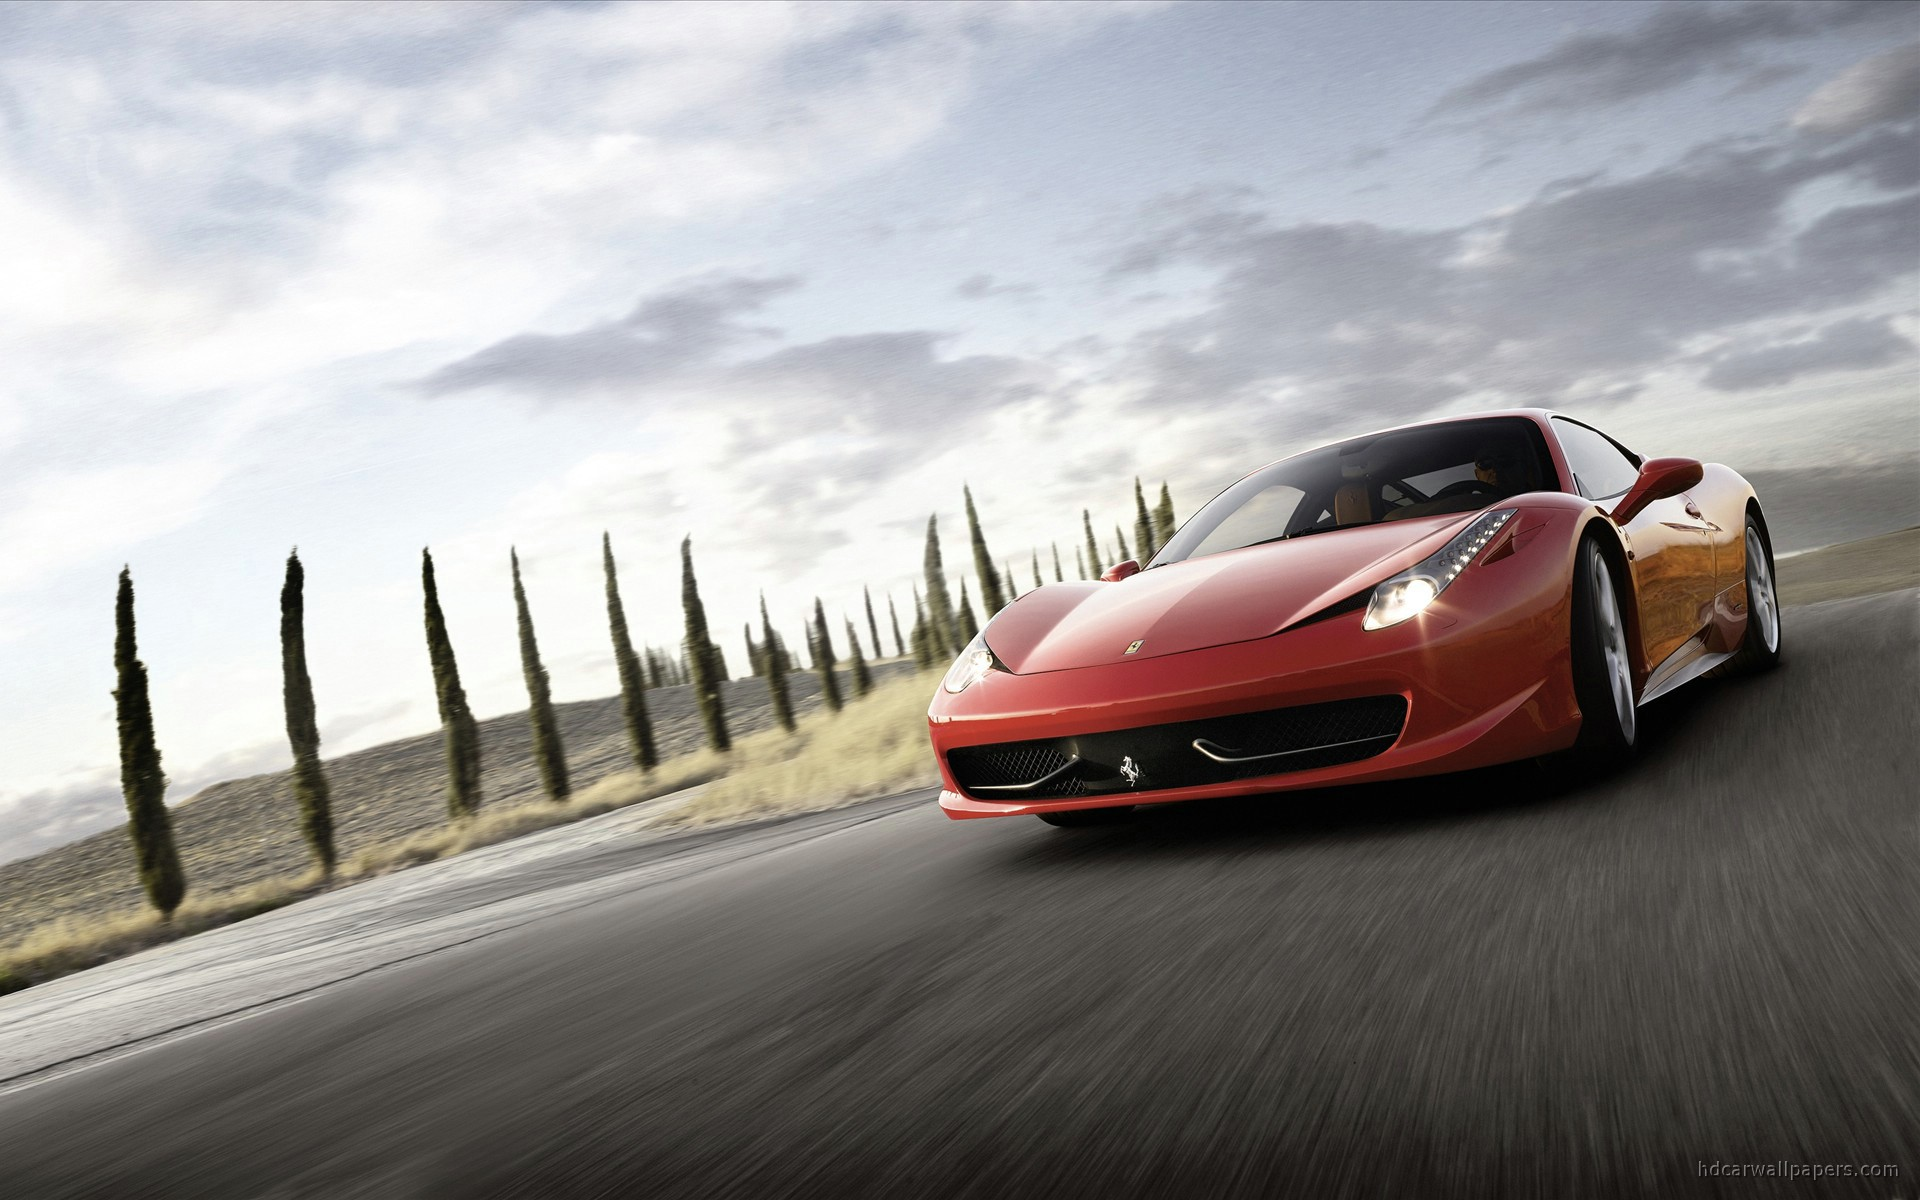 Ferrari Italia Supercar Wallpaper Hd Car Wallpapers